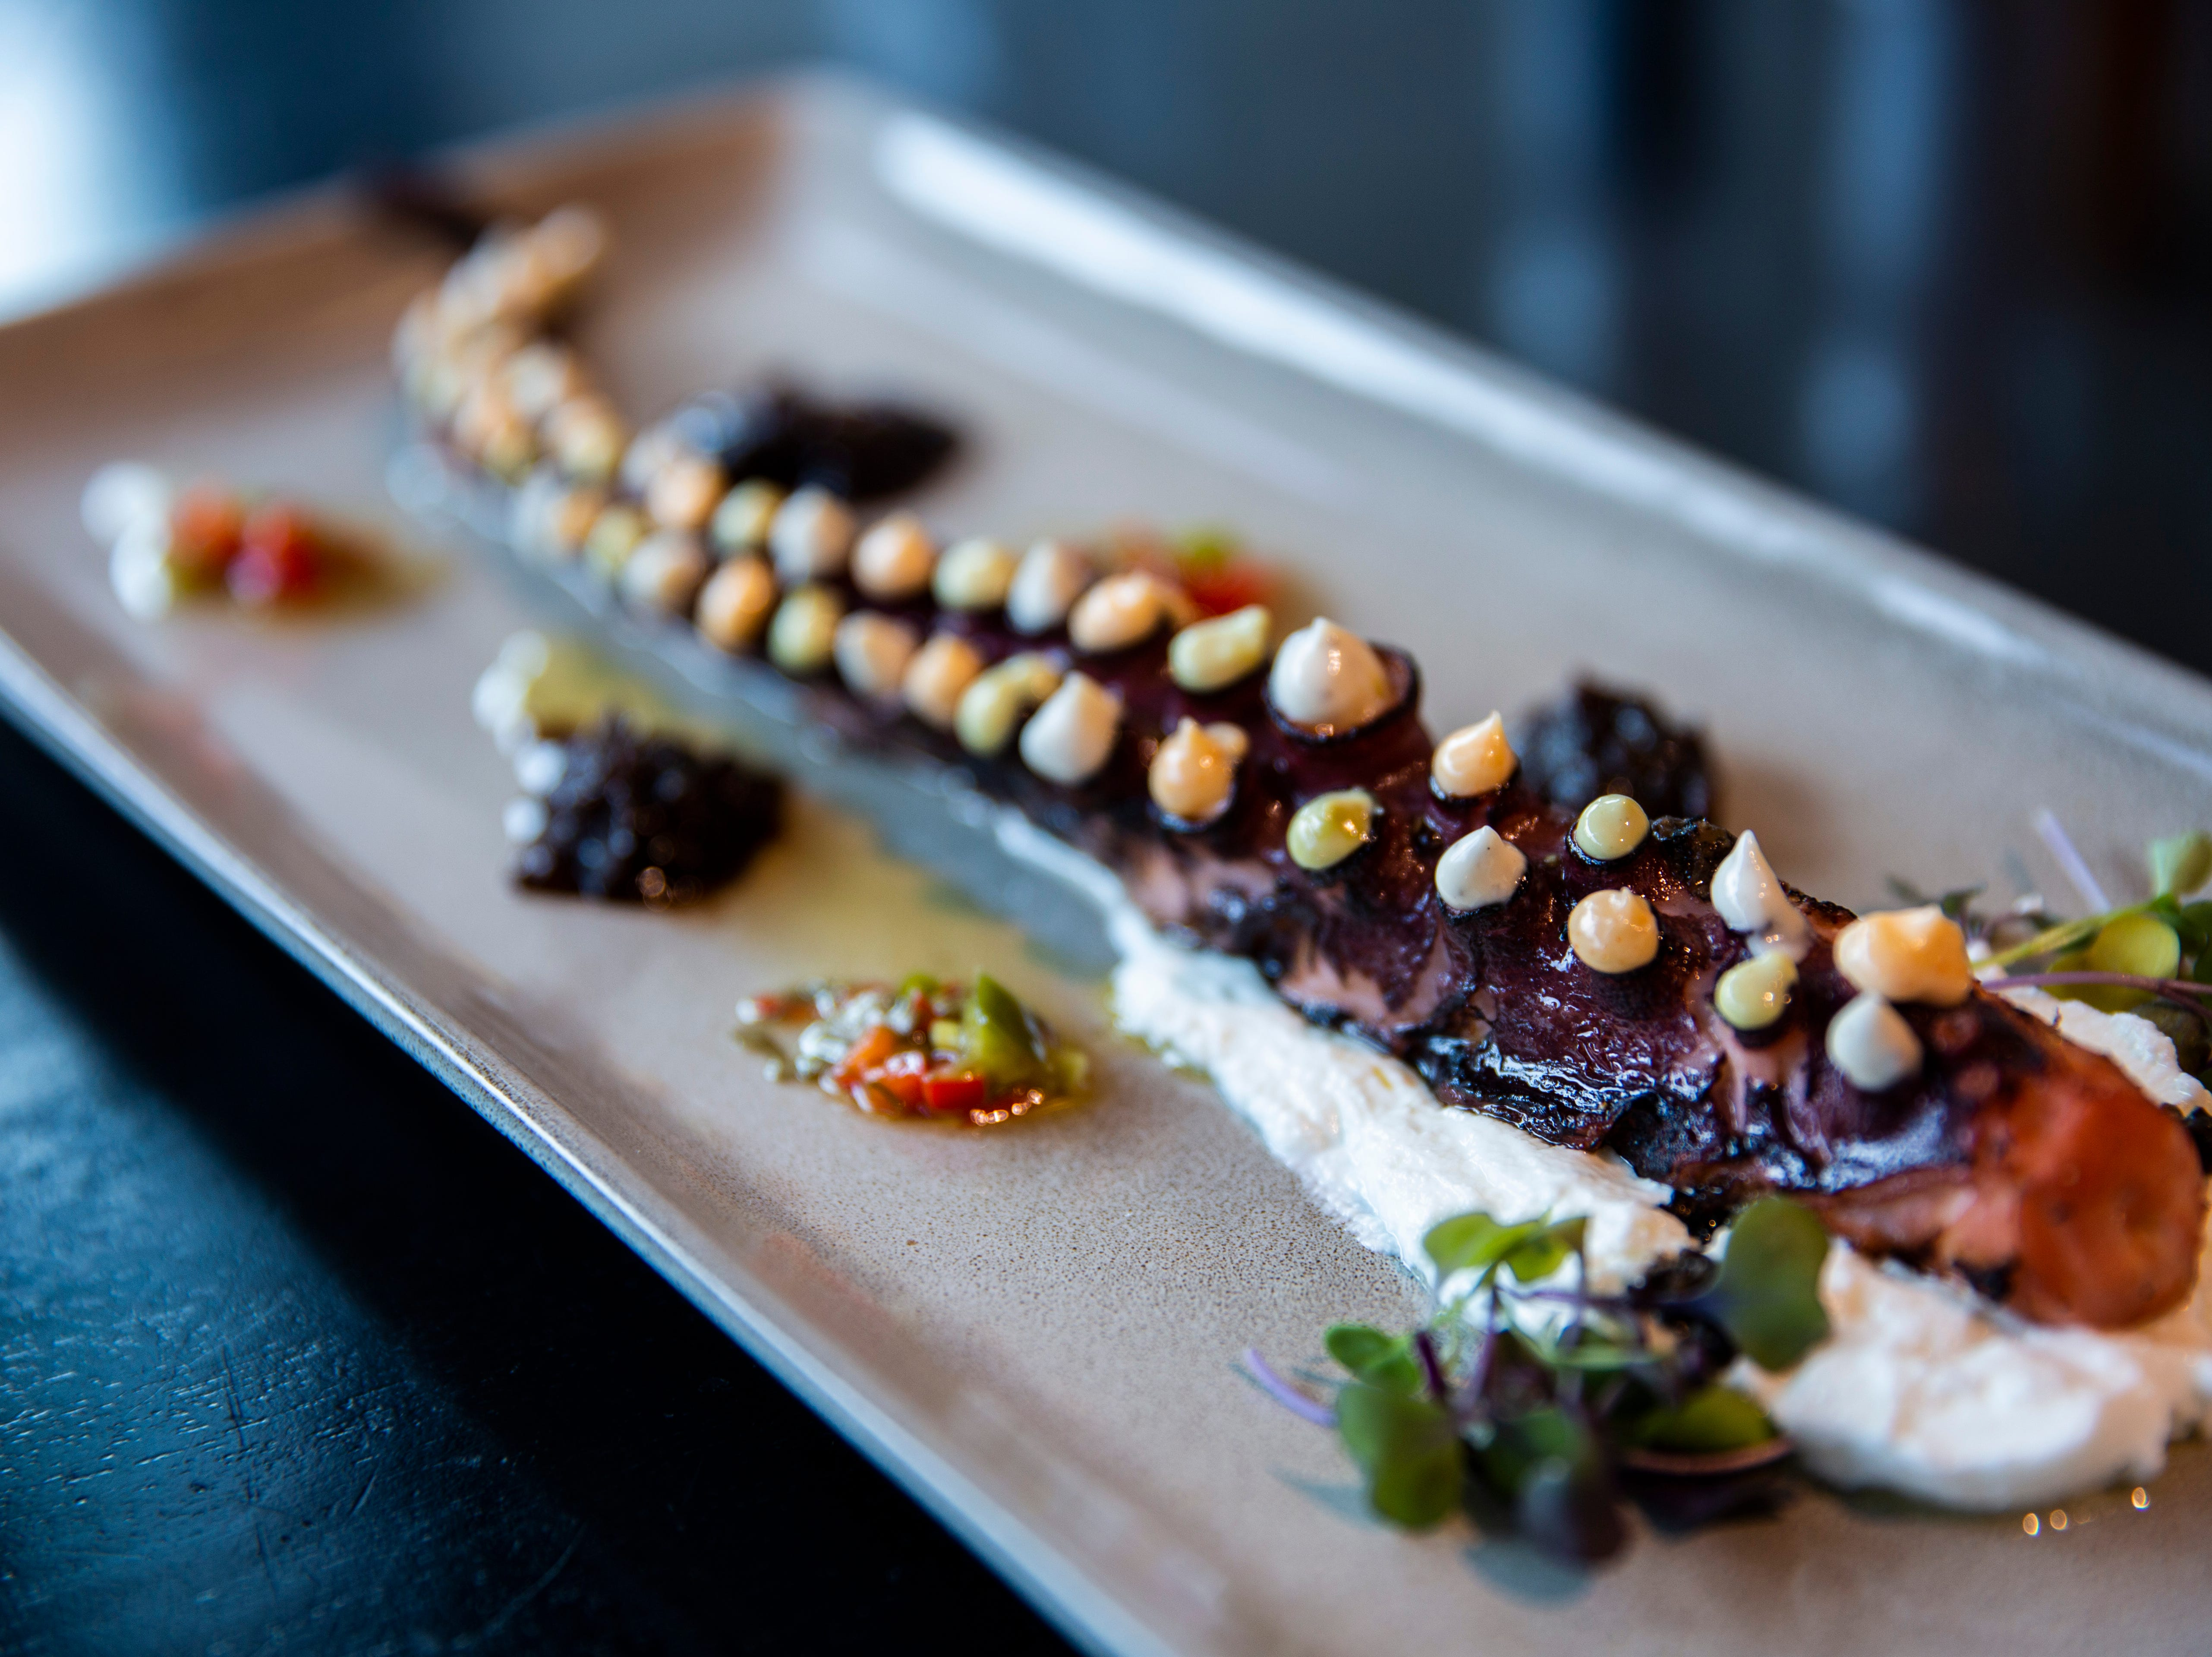 The Charred Octopus dish at Dorona comes with burrata, black truffle, smoked paprika, and caramelized onion jam.